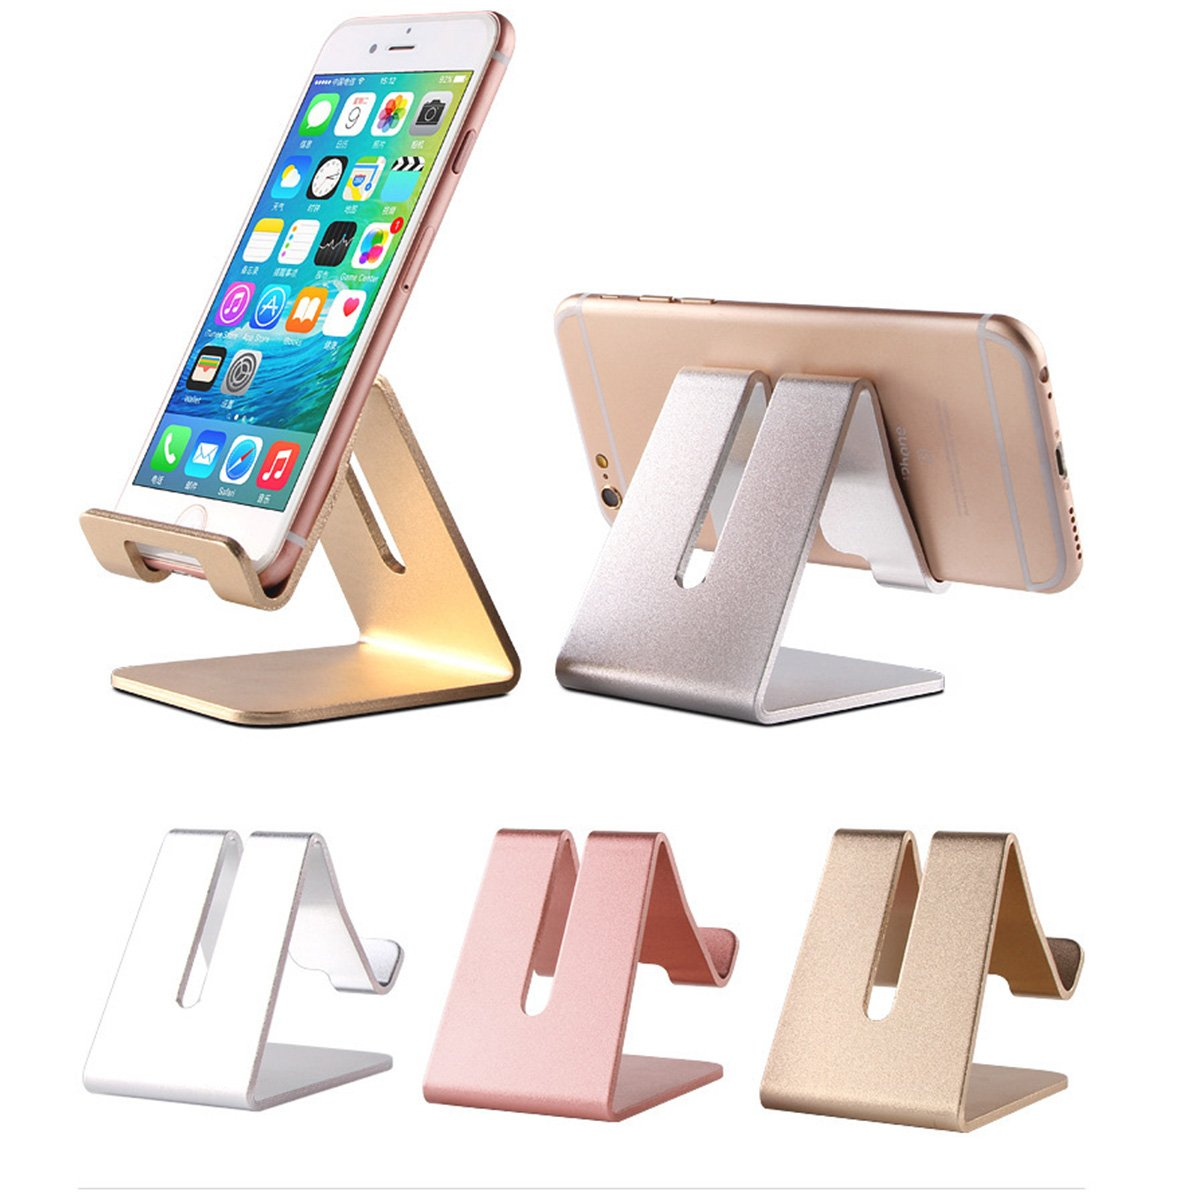 📱Cell Phone Stand Holder   To Beoneer Aluminum Desktop Solid Portable Universal Desk Stand For All Mobile Smart Phone Tablet Display Huawei I Phone 7 6 Plus 5 Ipad 2 3 4 Ipad Mini Samsung (Rose Gold) by Tobeoneer